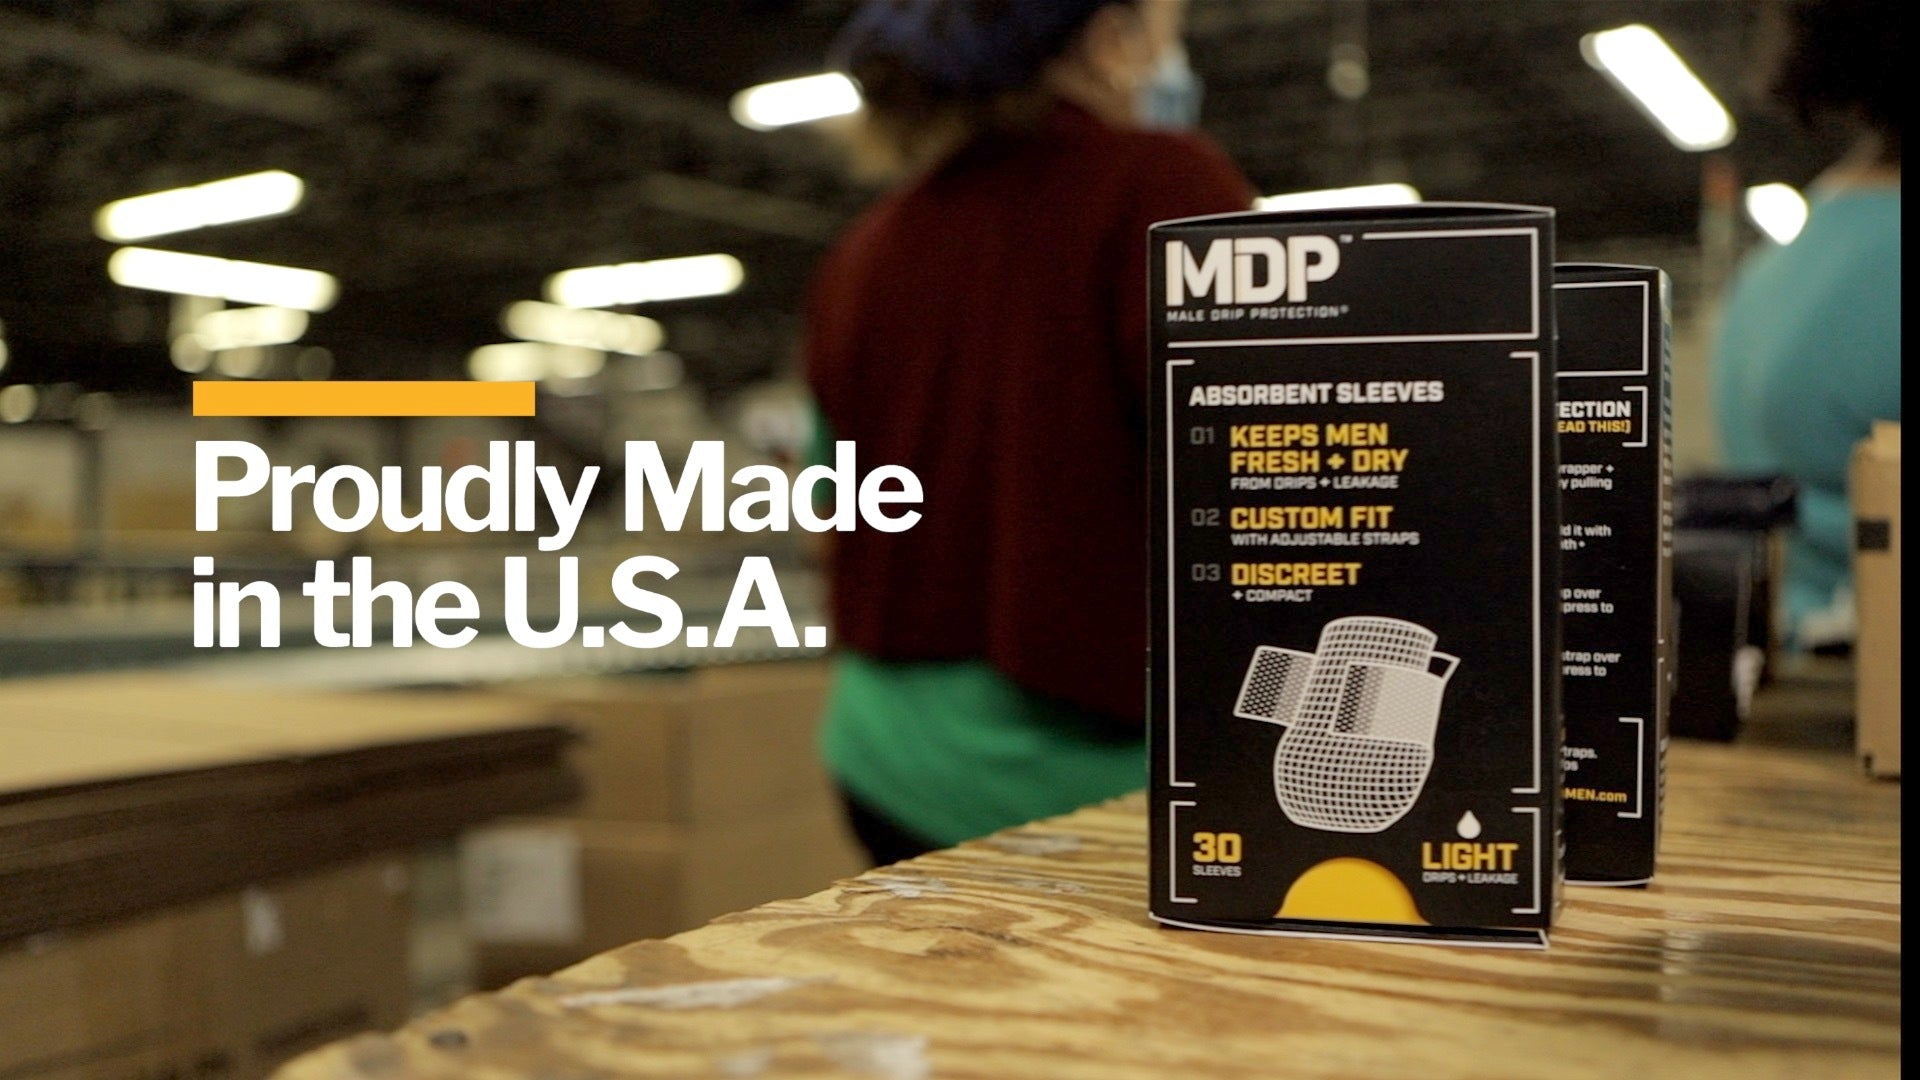 MDP - Male Drip Protection - Made in the USA